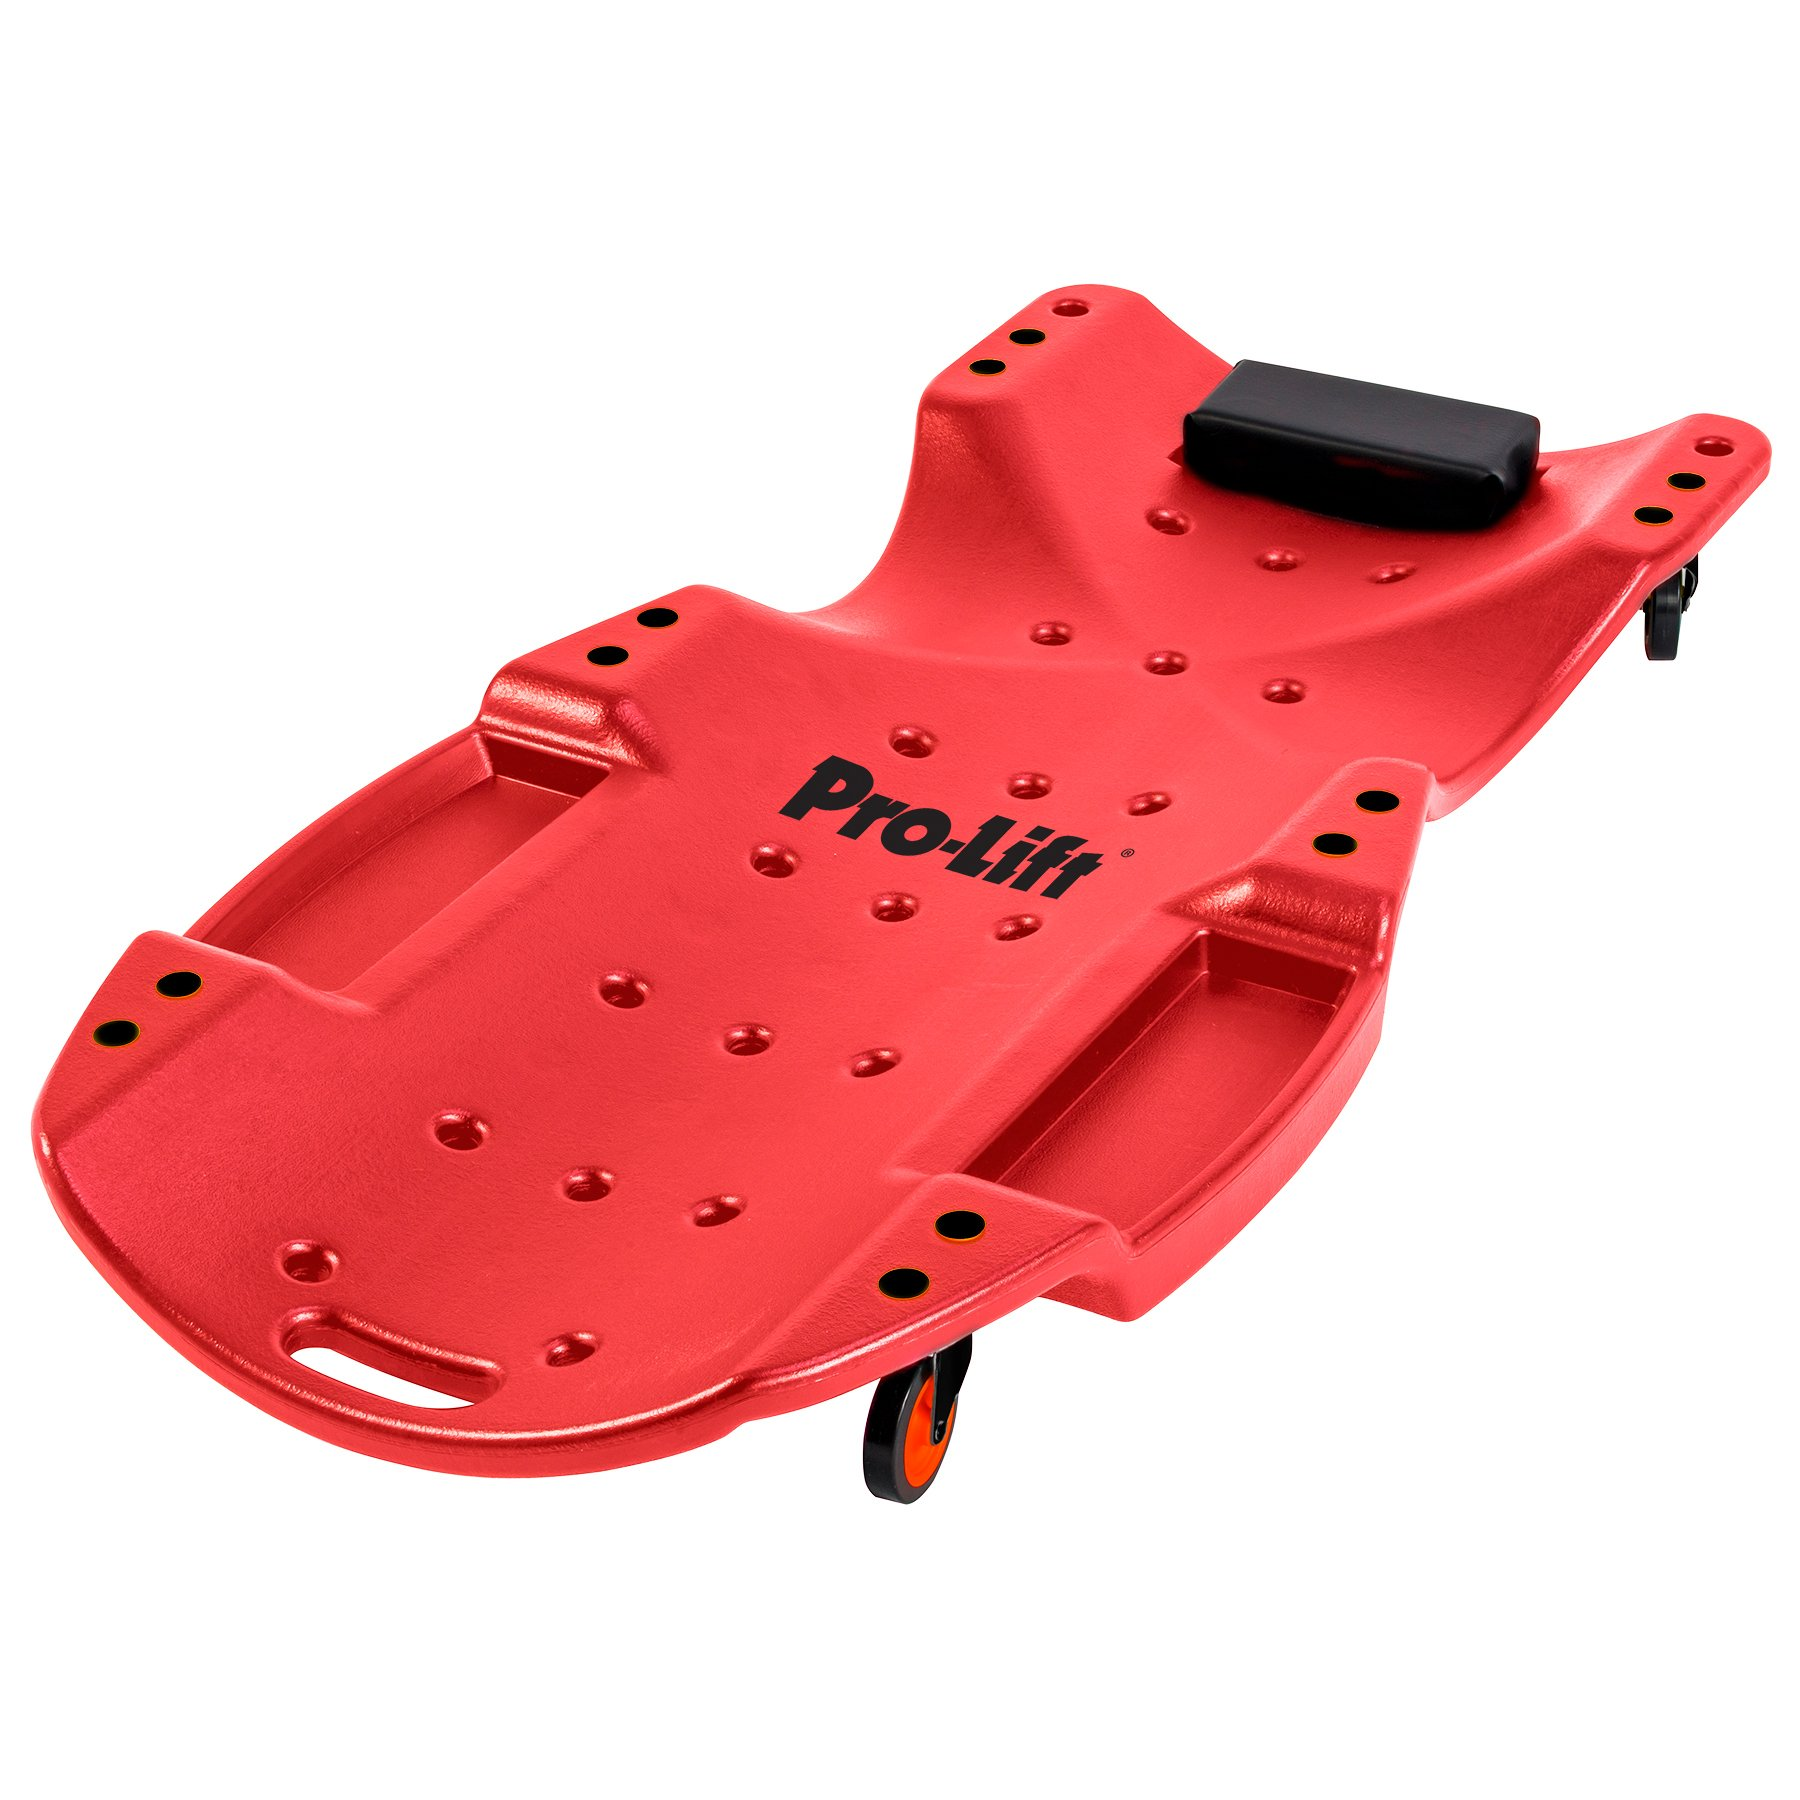 Pro-LifT C-6048 48'' Plastic Creeper with Dual Tool Trays by Pro-LifT